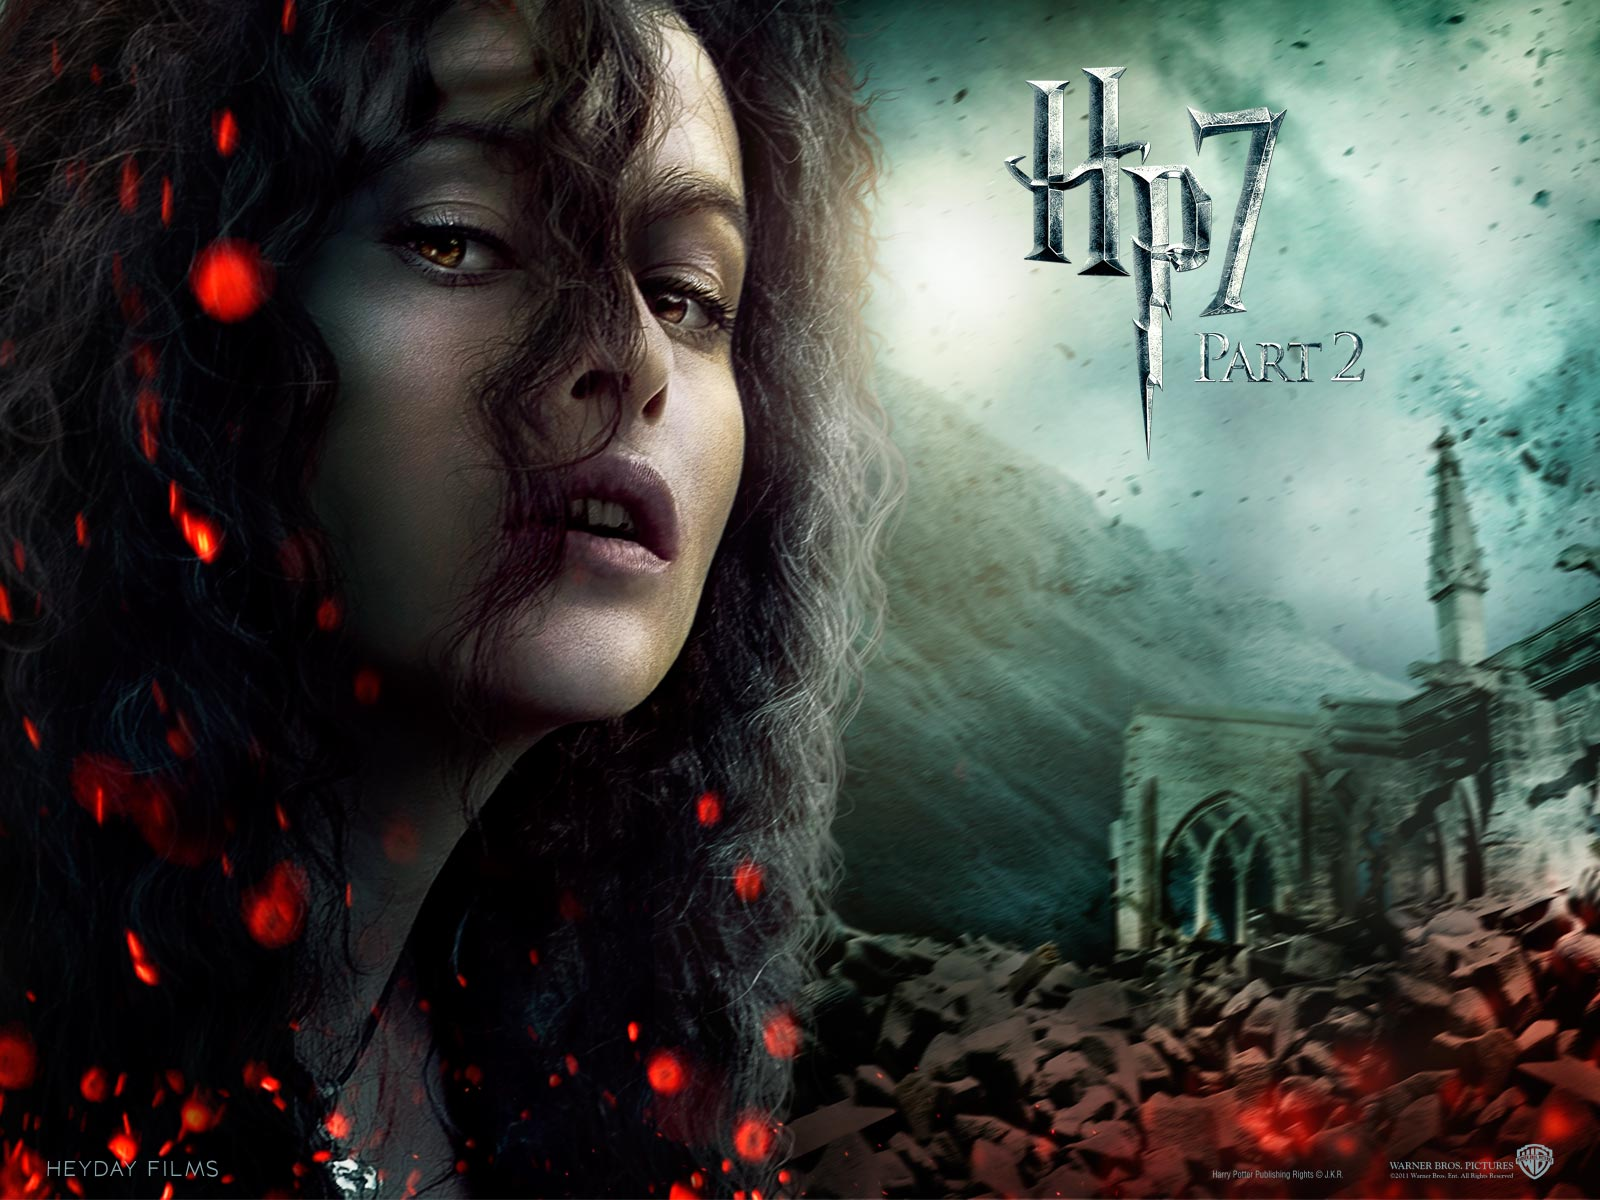 Deathly Hallows Part II Official Wallpapers - Bellatrix Lestrange Wallpaper (23331871) - Fanpop